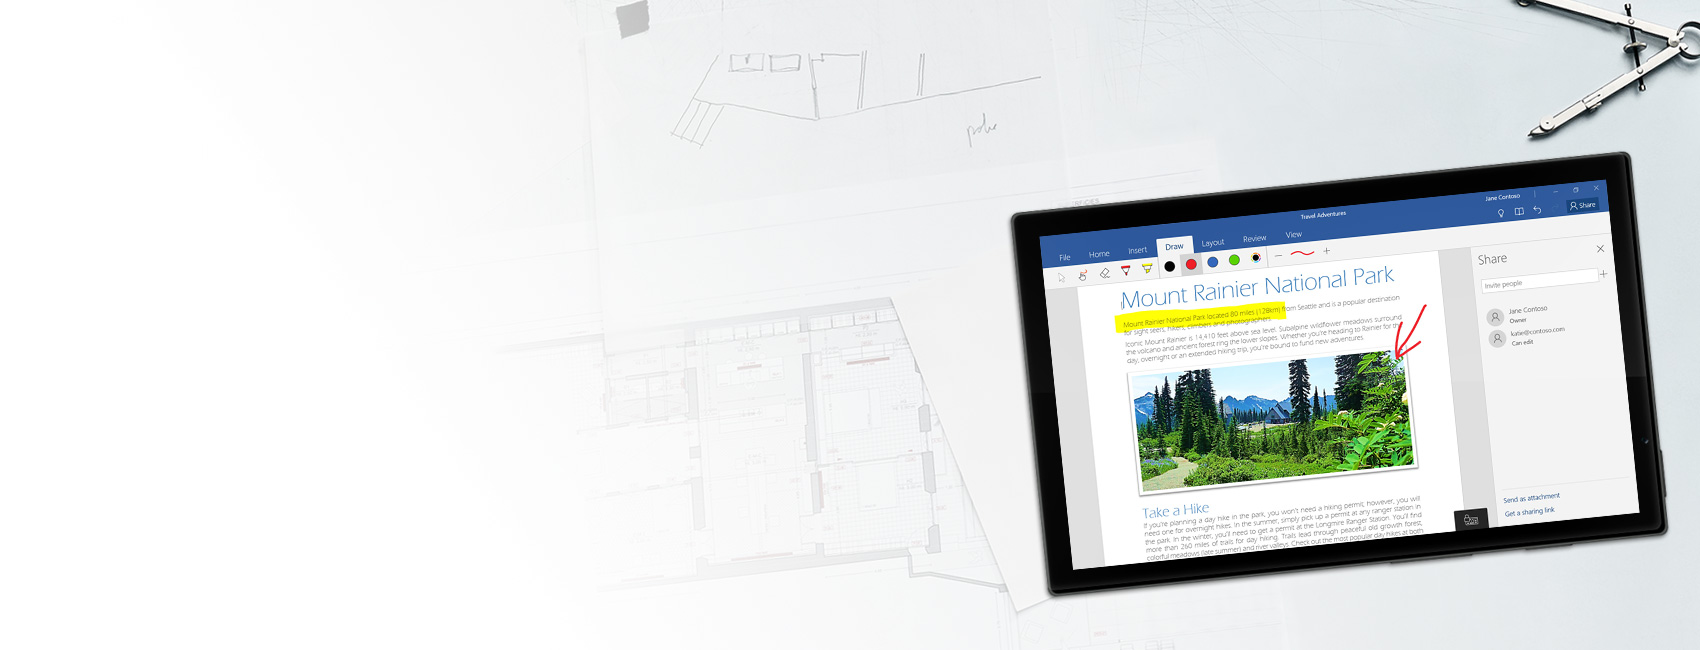 Windows tablet displaying a Word document about Mount Rainier National Park in Word for Windows 10 Mobile